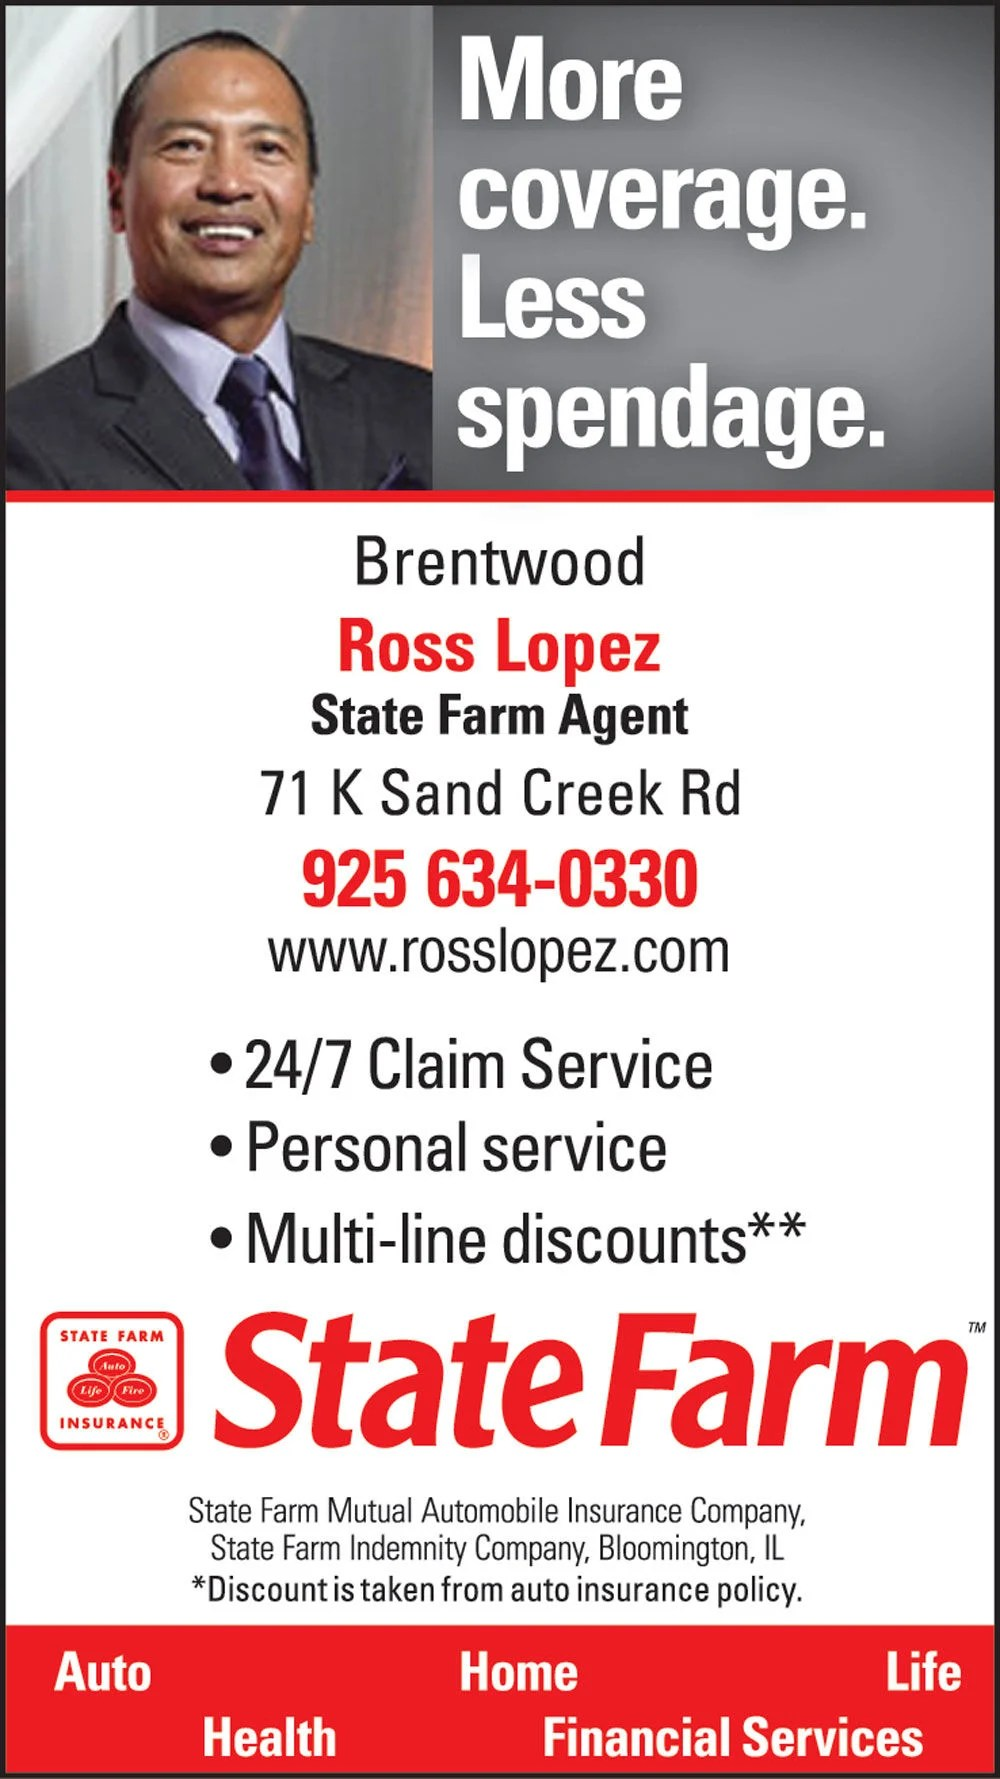 State Farm Insurance Ross Lopez Homeowner Insurance Life Insurance Brentwood Ca Thepress Net